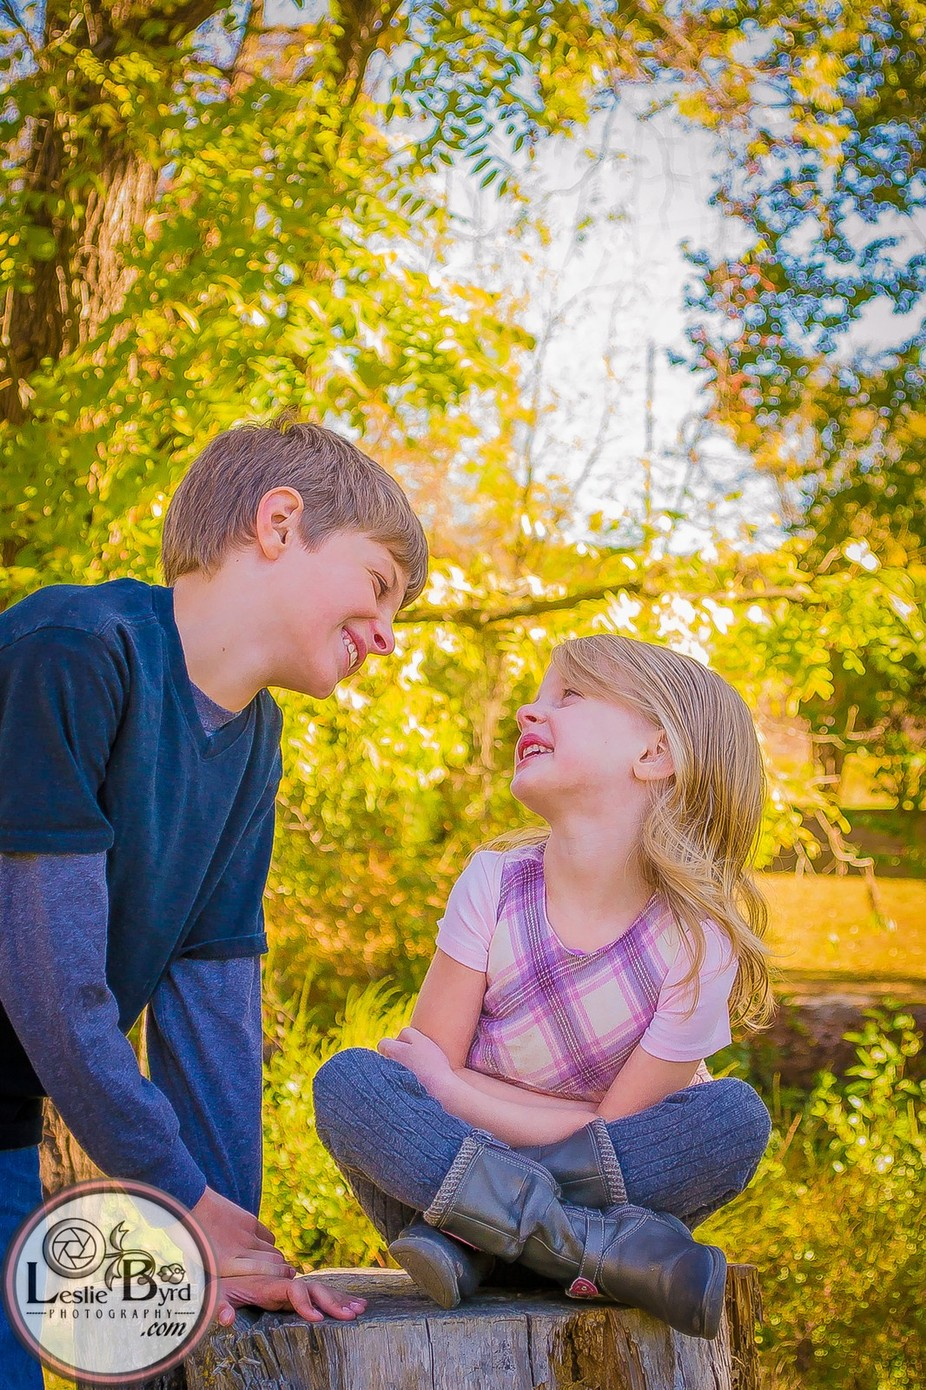 A sweet image of my children captured during an outdoor Autumn photo session.